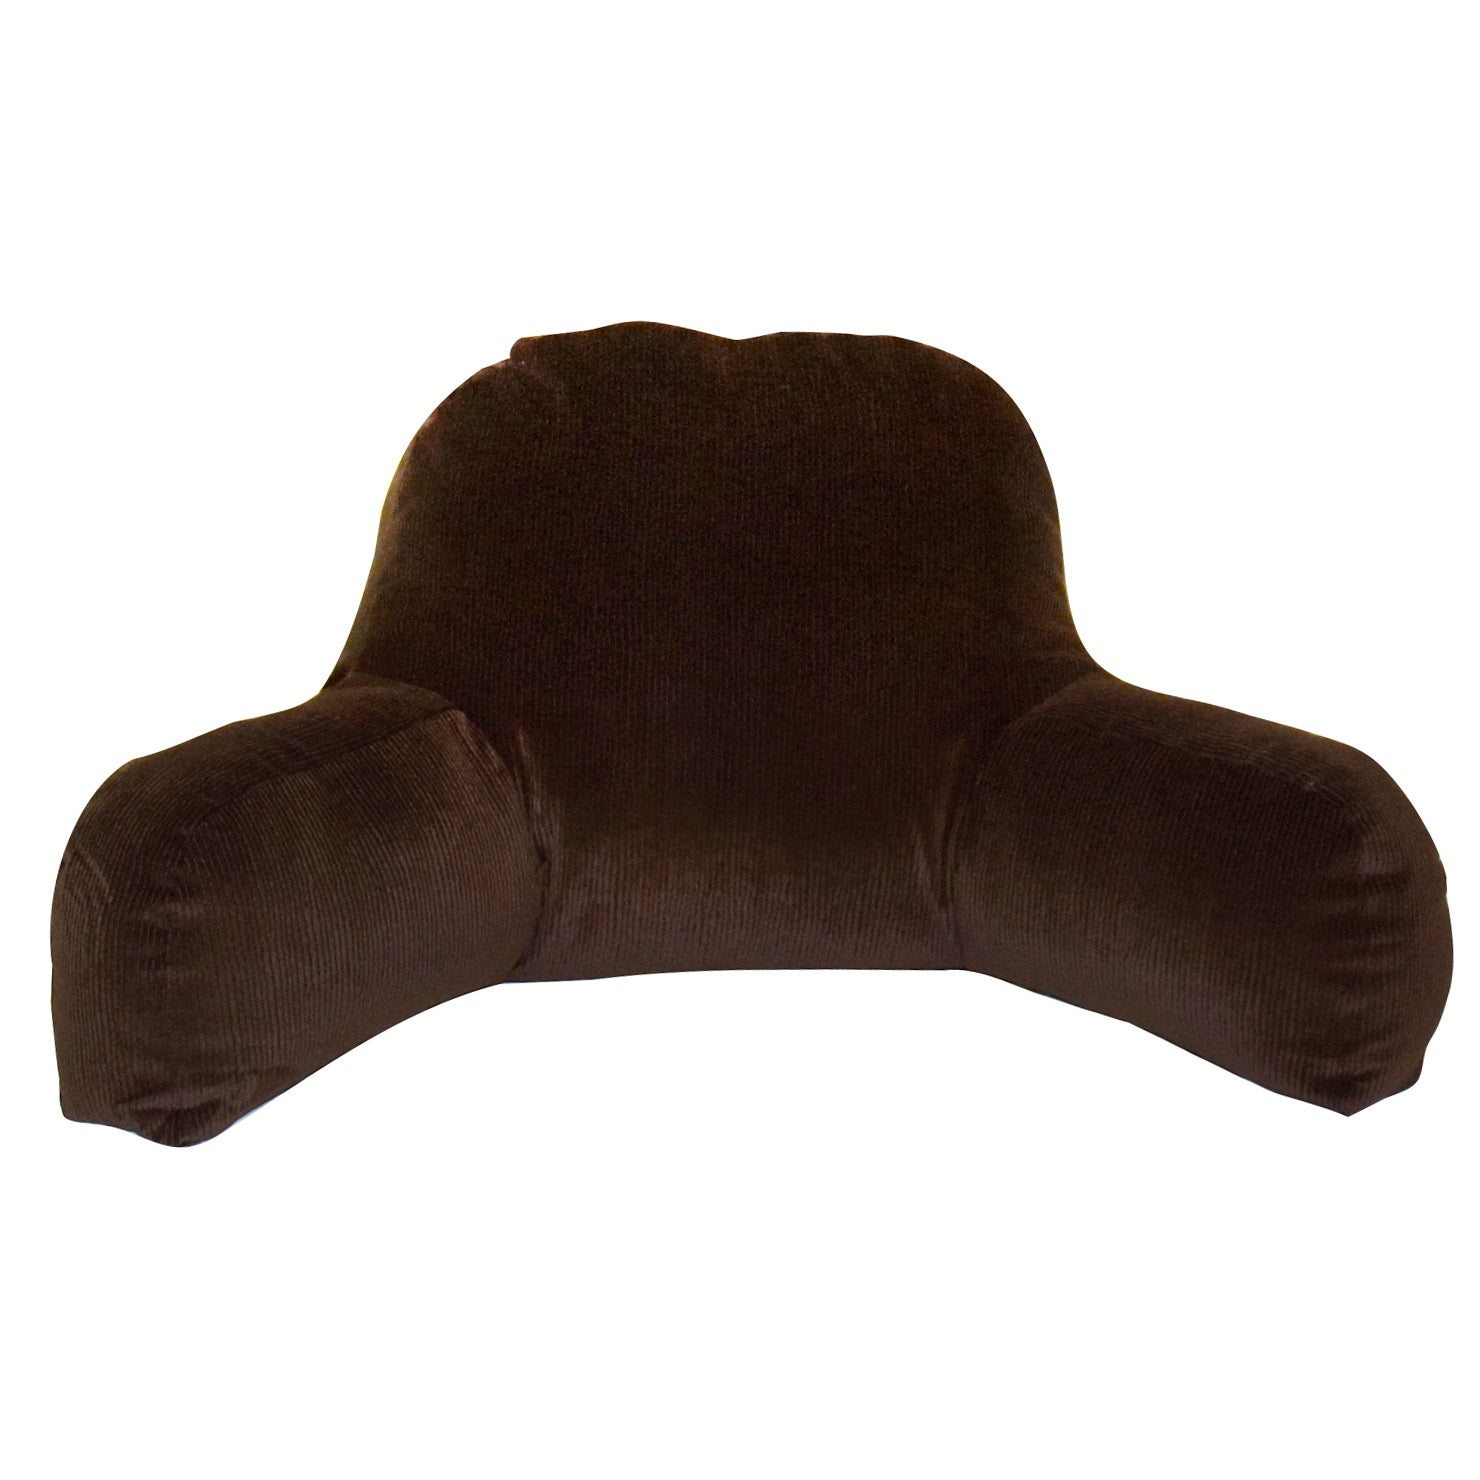 omaha bitter bed rest pillow overstock shopping great